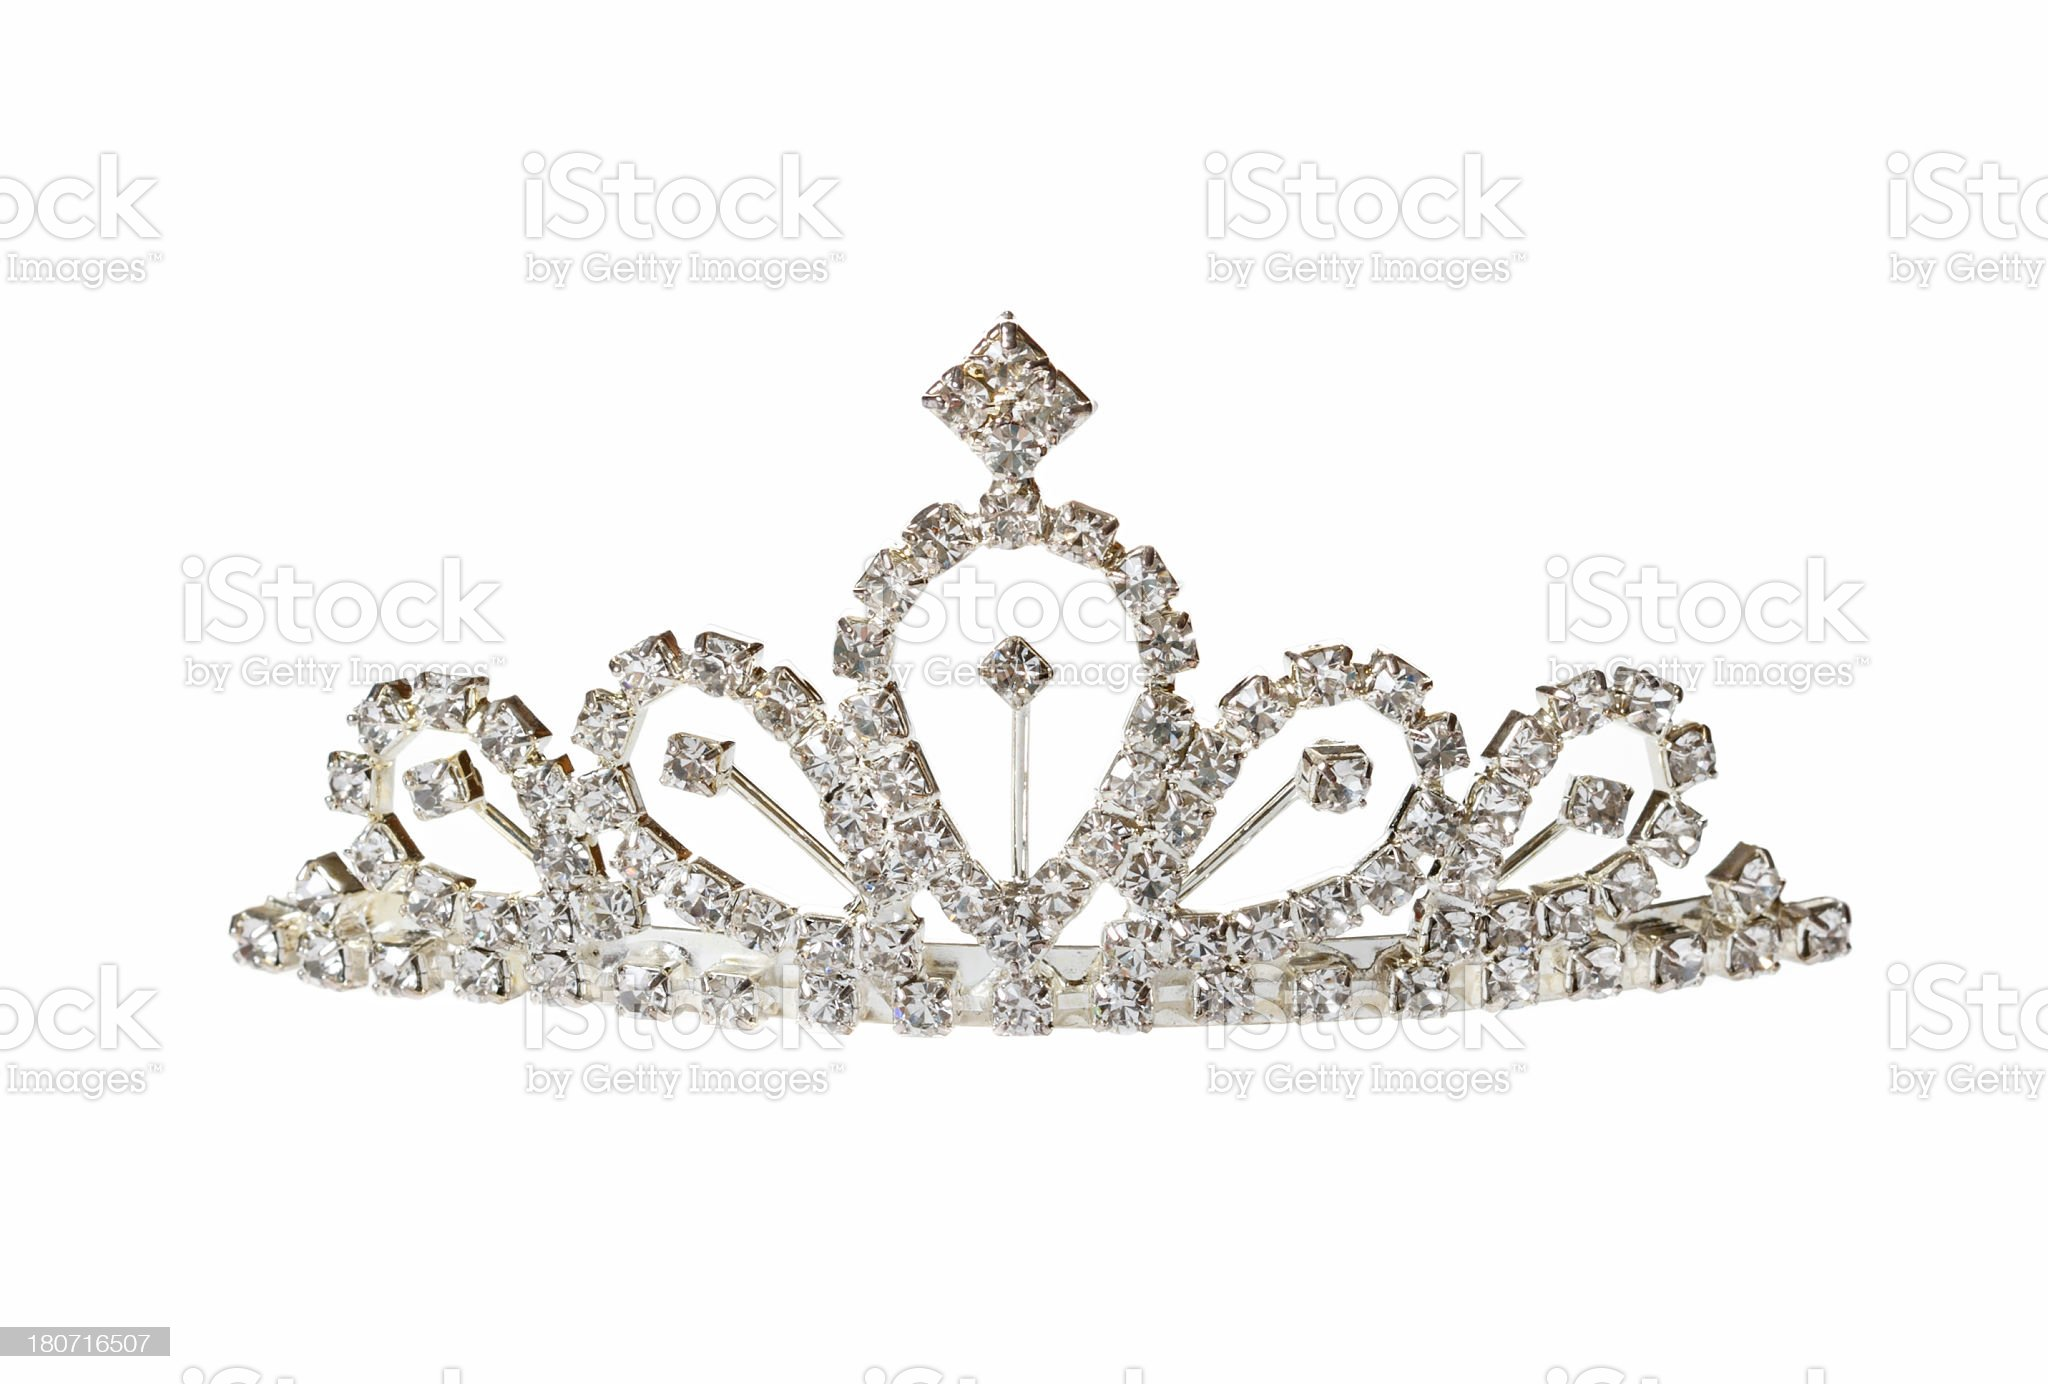 Closeup of silver diadem royalty-free stock photo